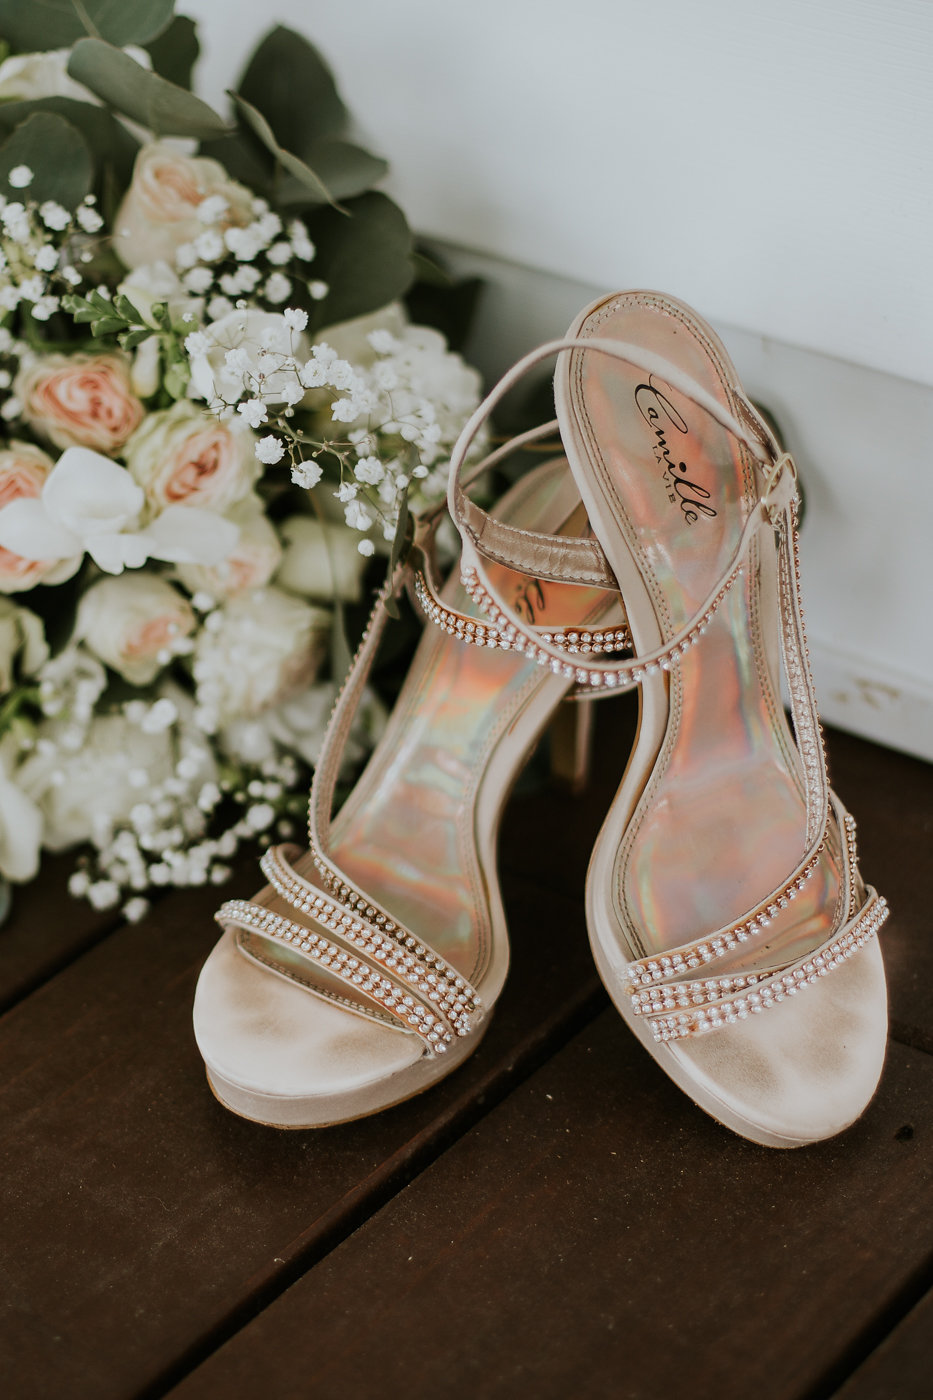 Gold Strappy Bridal Heels - North Carolina Wedding Venue - Triple J Manor House Wedding